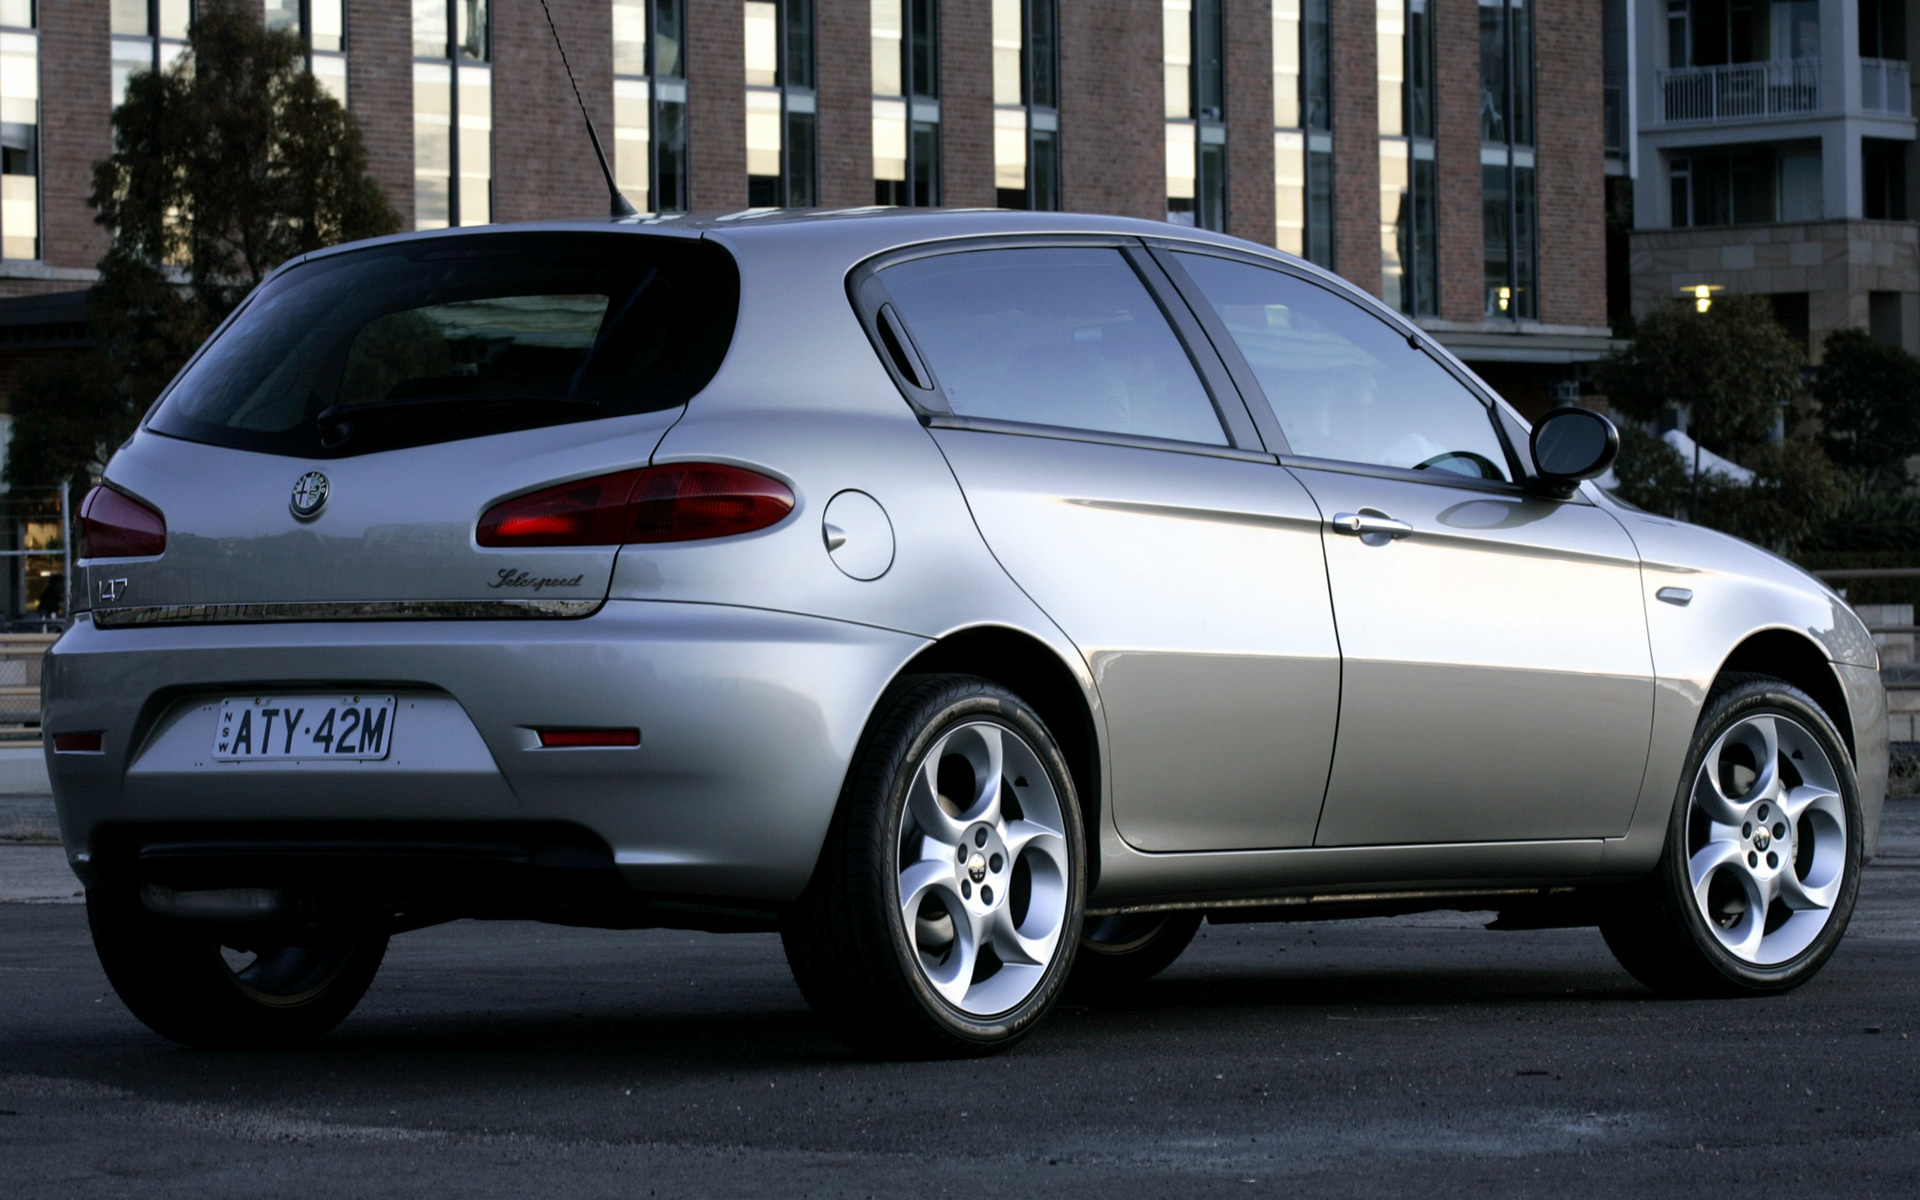 1920x1200 - Alfa Romeo 147 Wallpapers 33